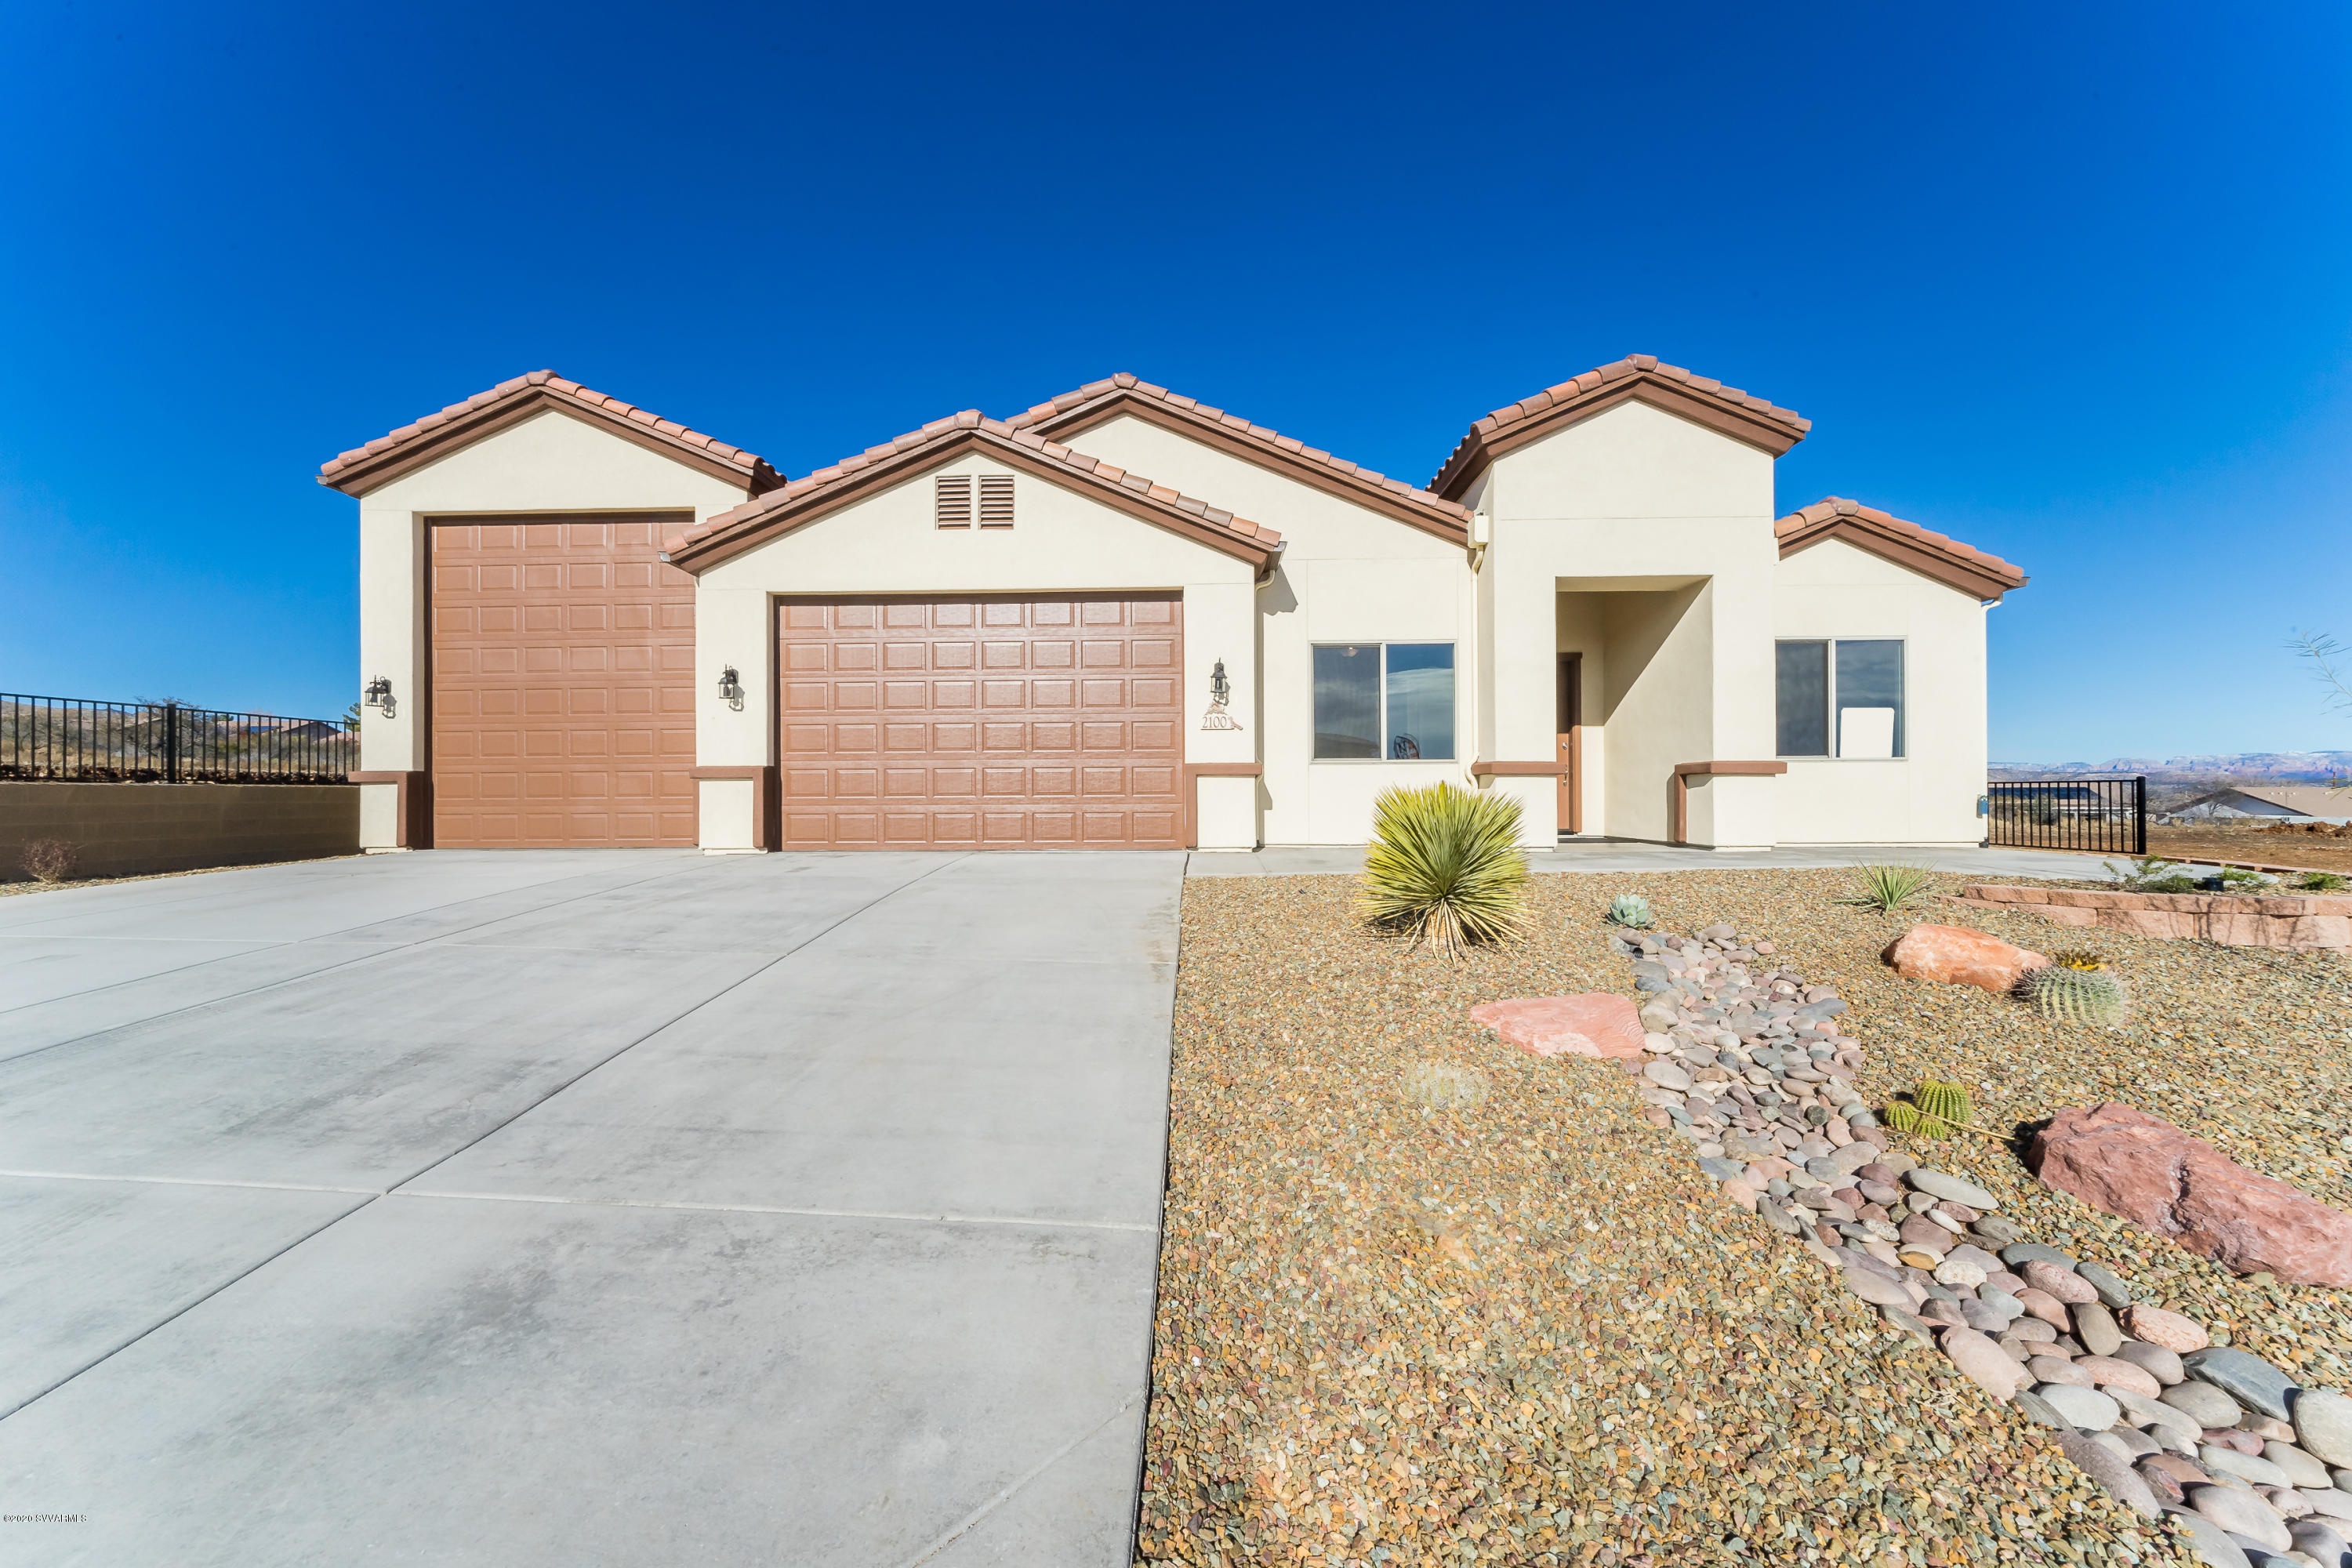 Photo of 2100 Prospect Circle, Cottonwood, AZ 86326